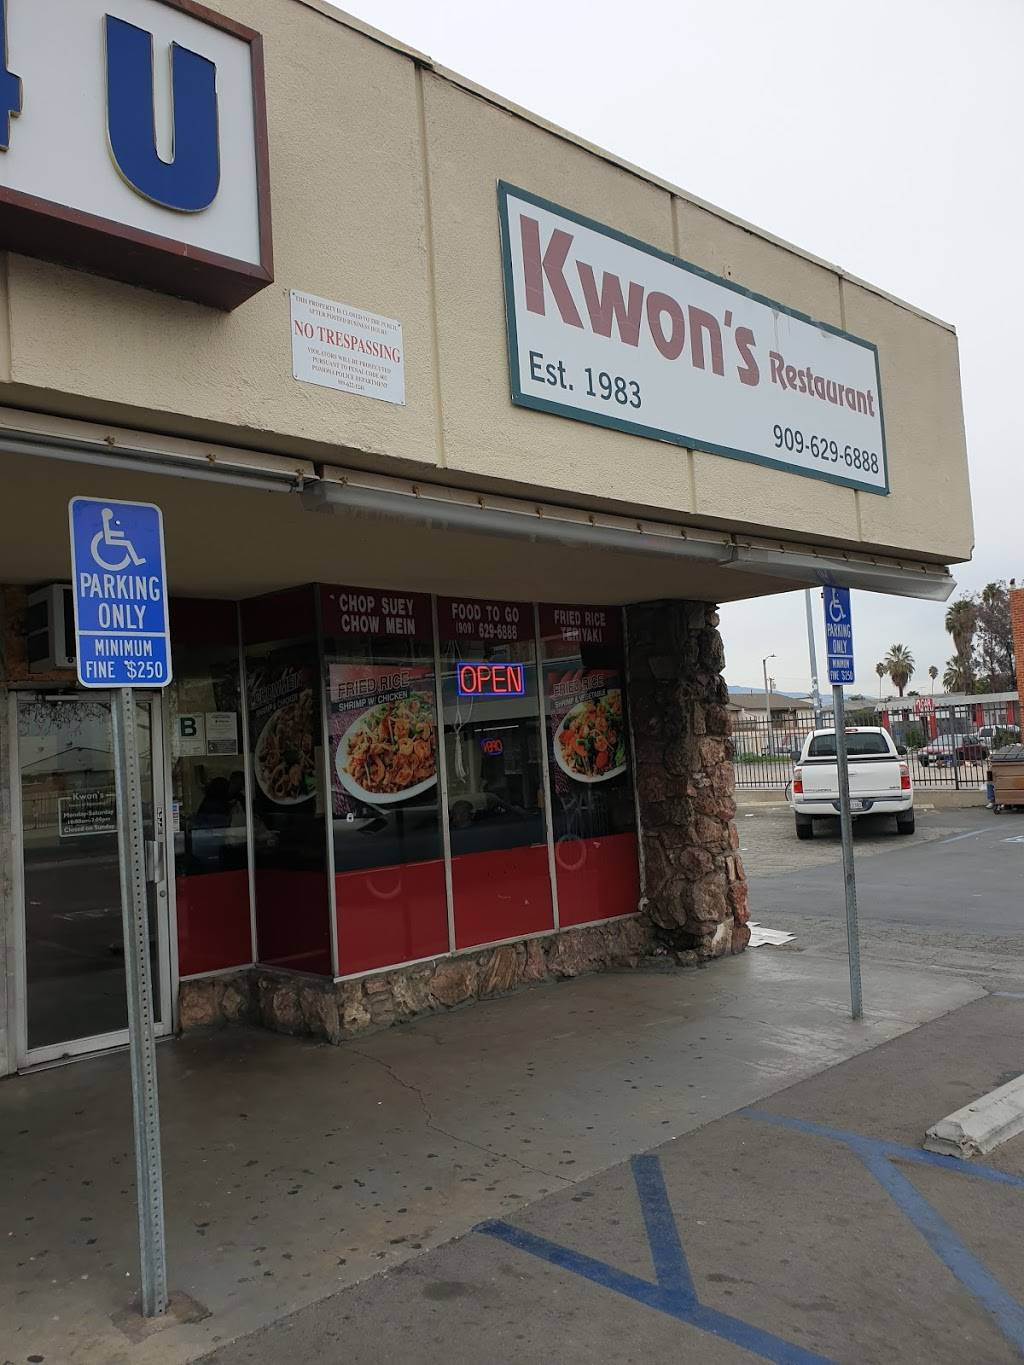 Kwons Restaurant   meal takeaway   1625 W Holt Ave, Pomona, CA 91768, USA   9096296888 OR +1 909-629-6888